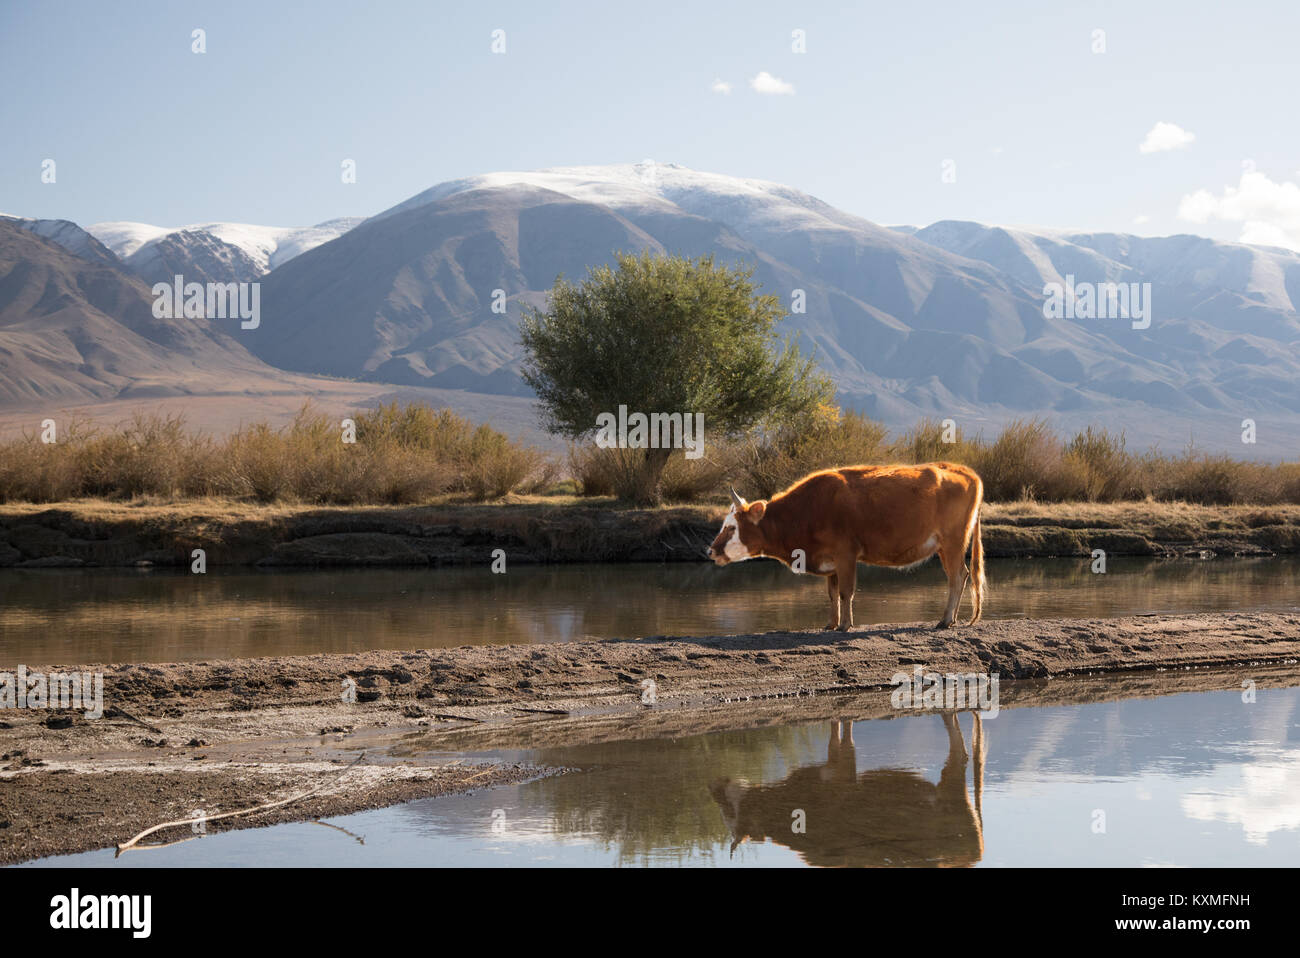 Mongolian cow resting river sand bank snowy mountains Mongolia - Stock Image